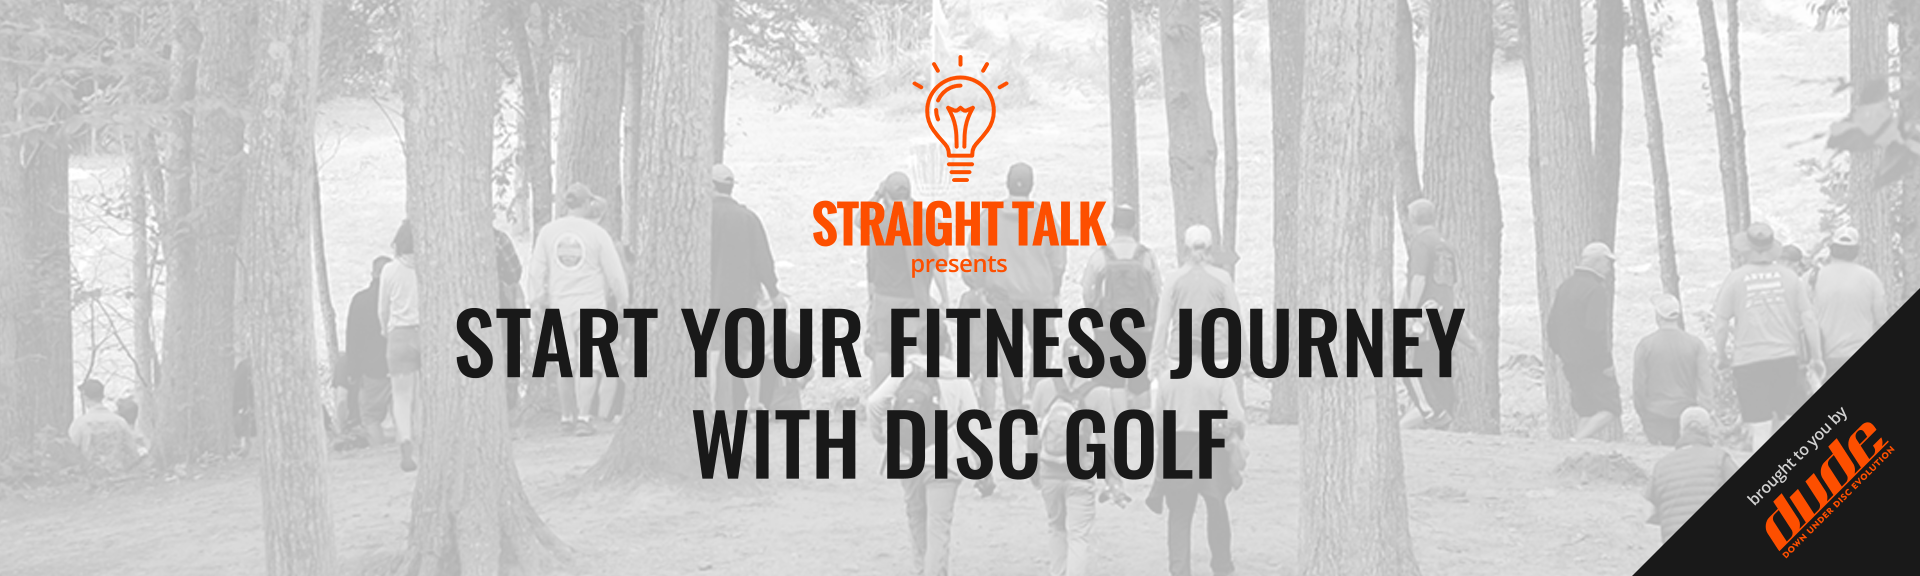 Dude Clothing Straight Talk Start Your Fitness Journey With Disc Golf